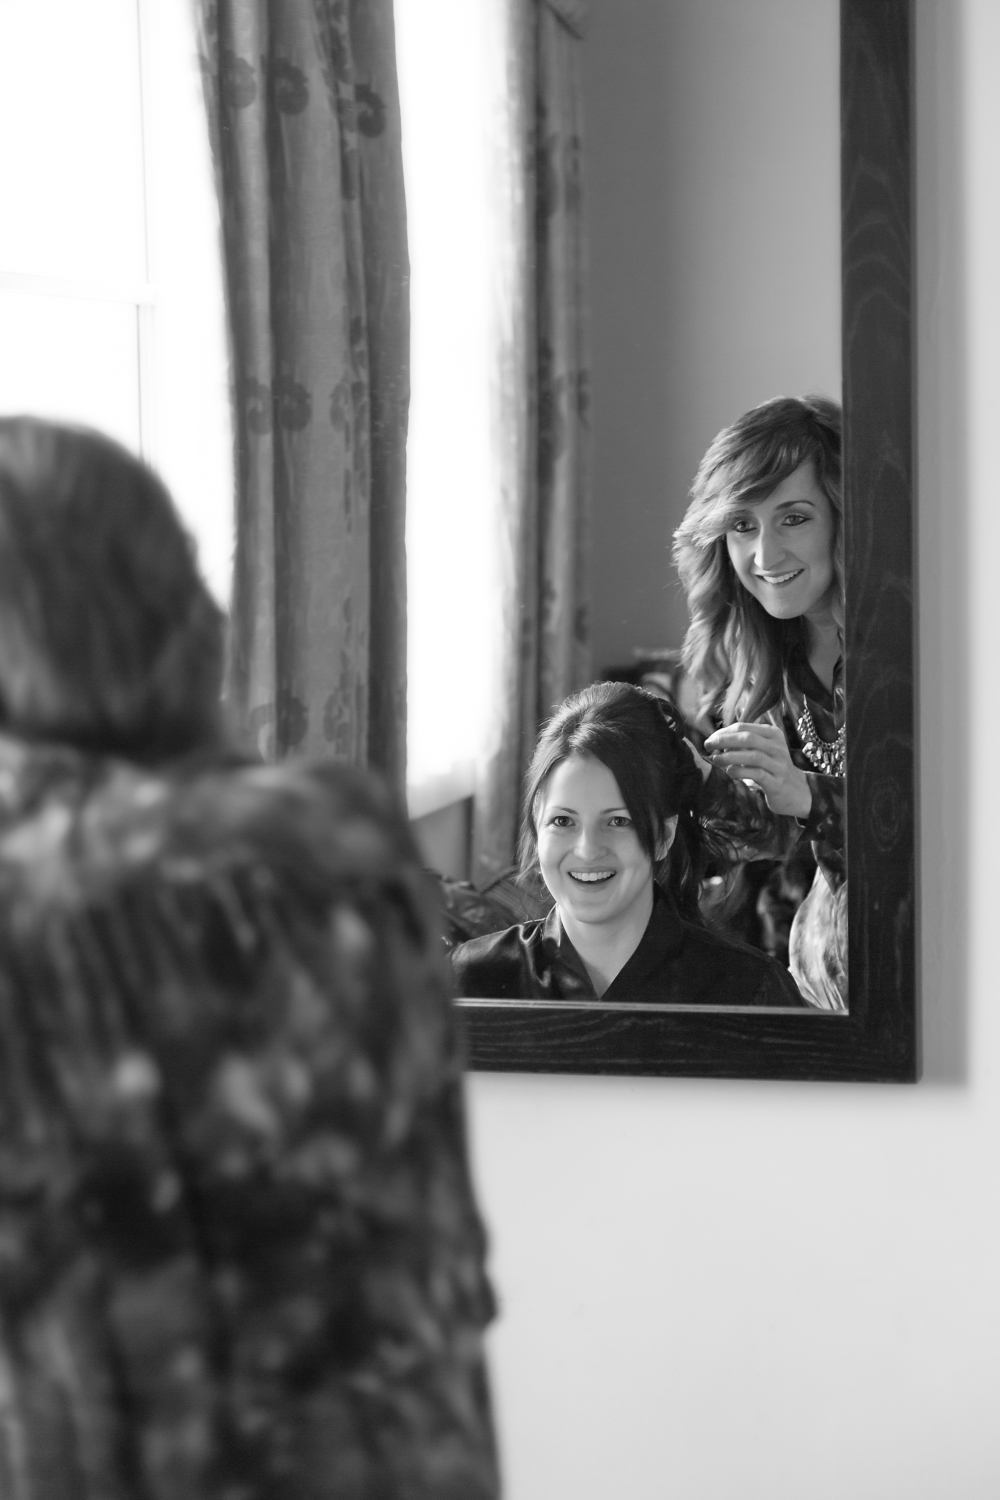 Photograph of a bride and hairdresser looking into the mirror smiling